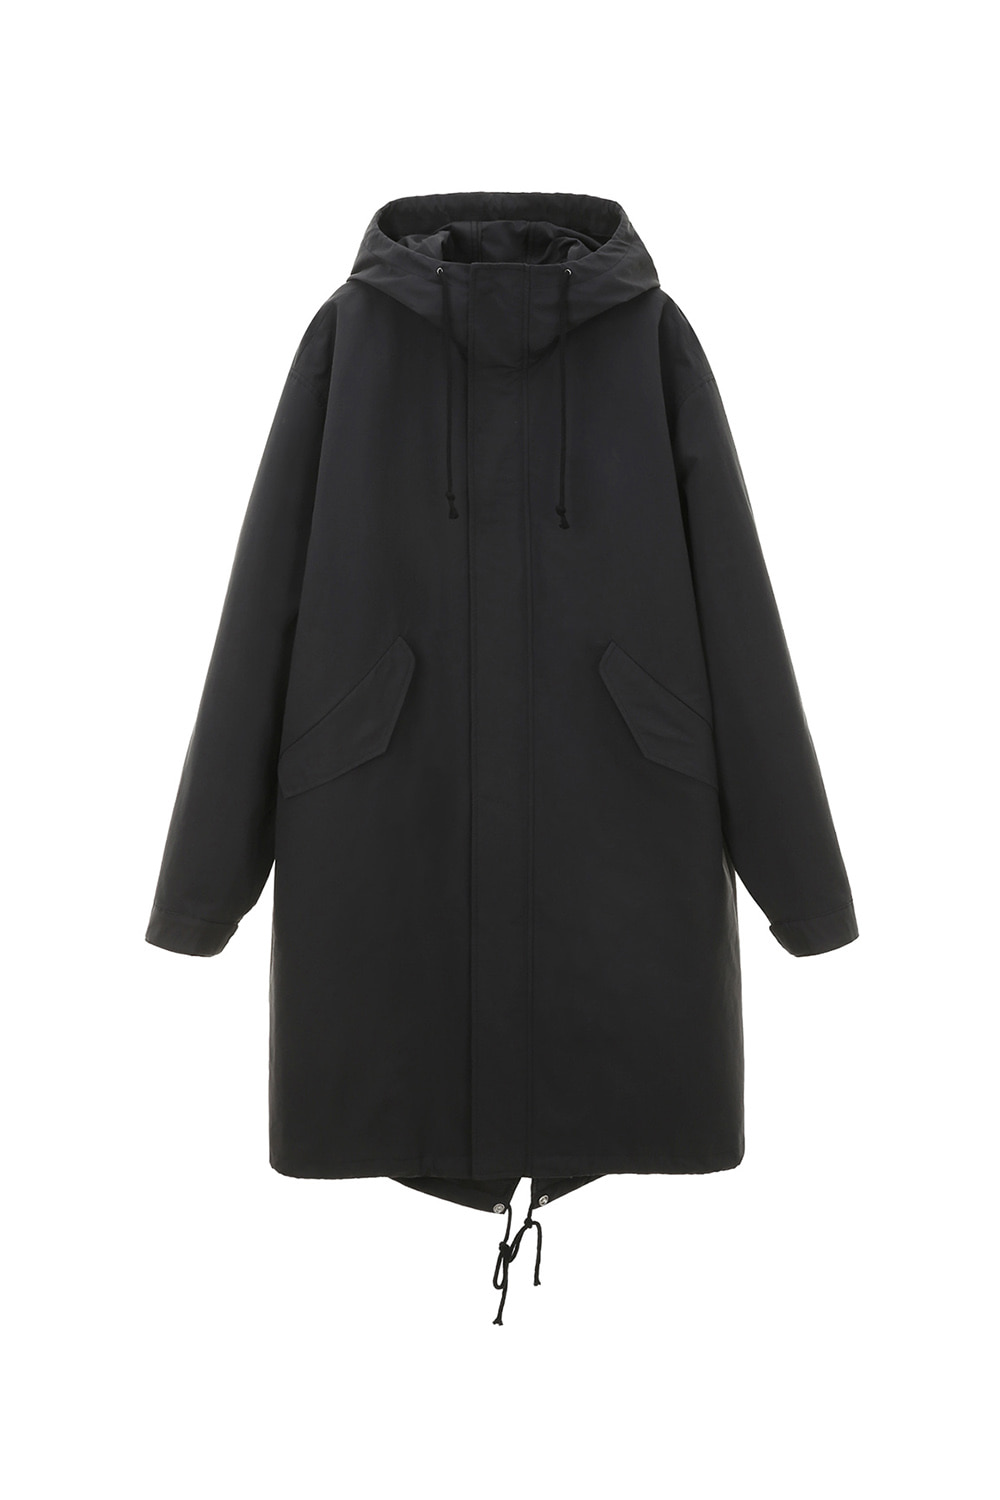 Hooded Parka Men [Almost Black] -60%